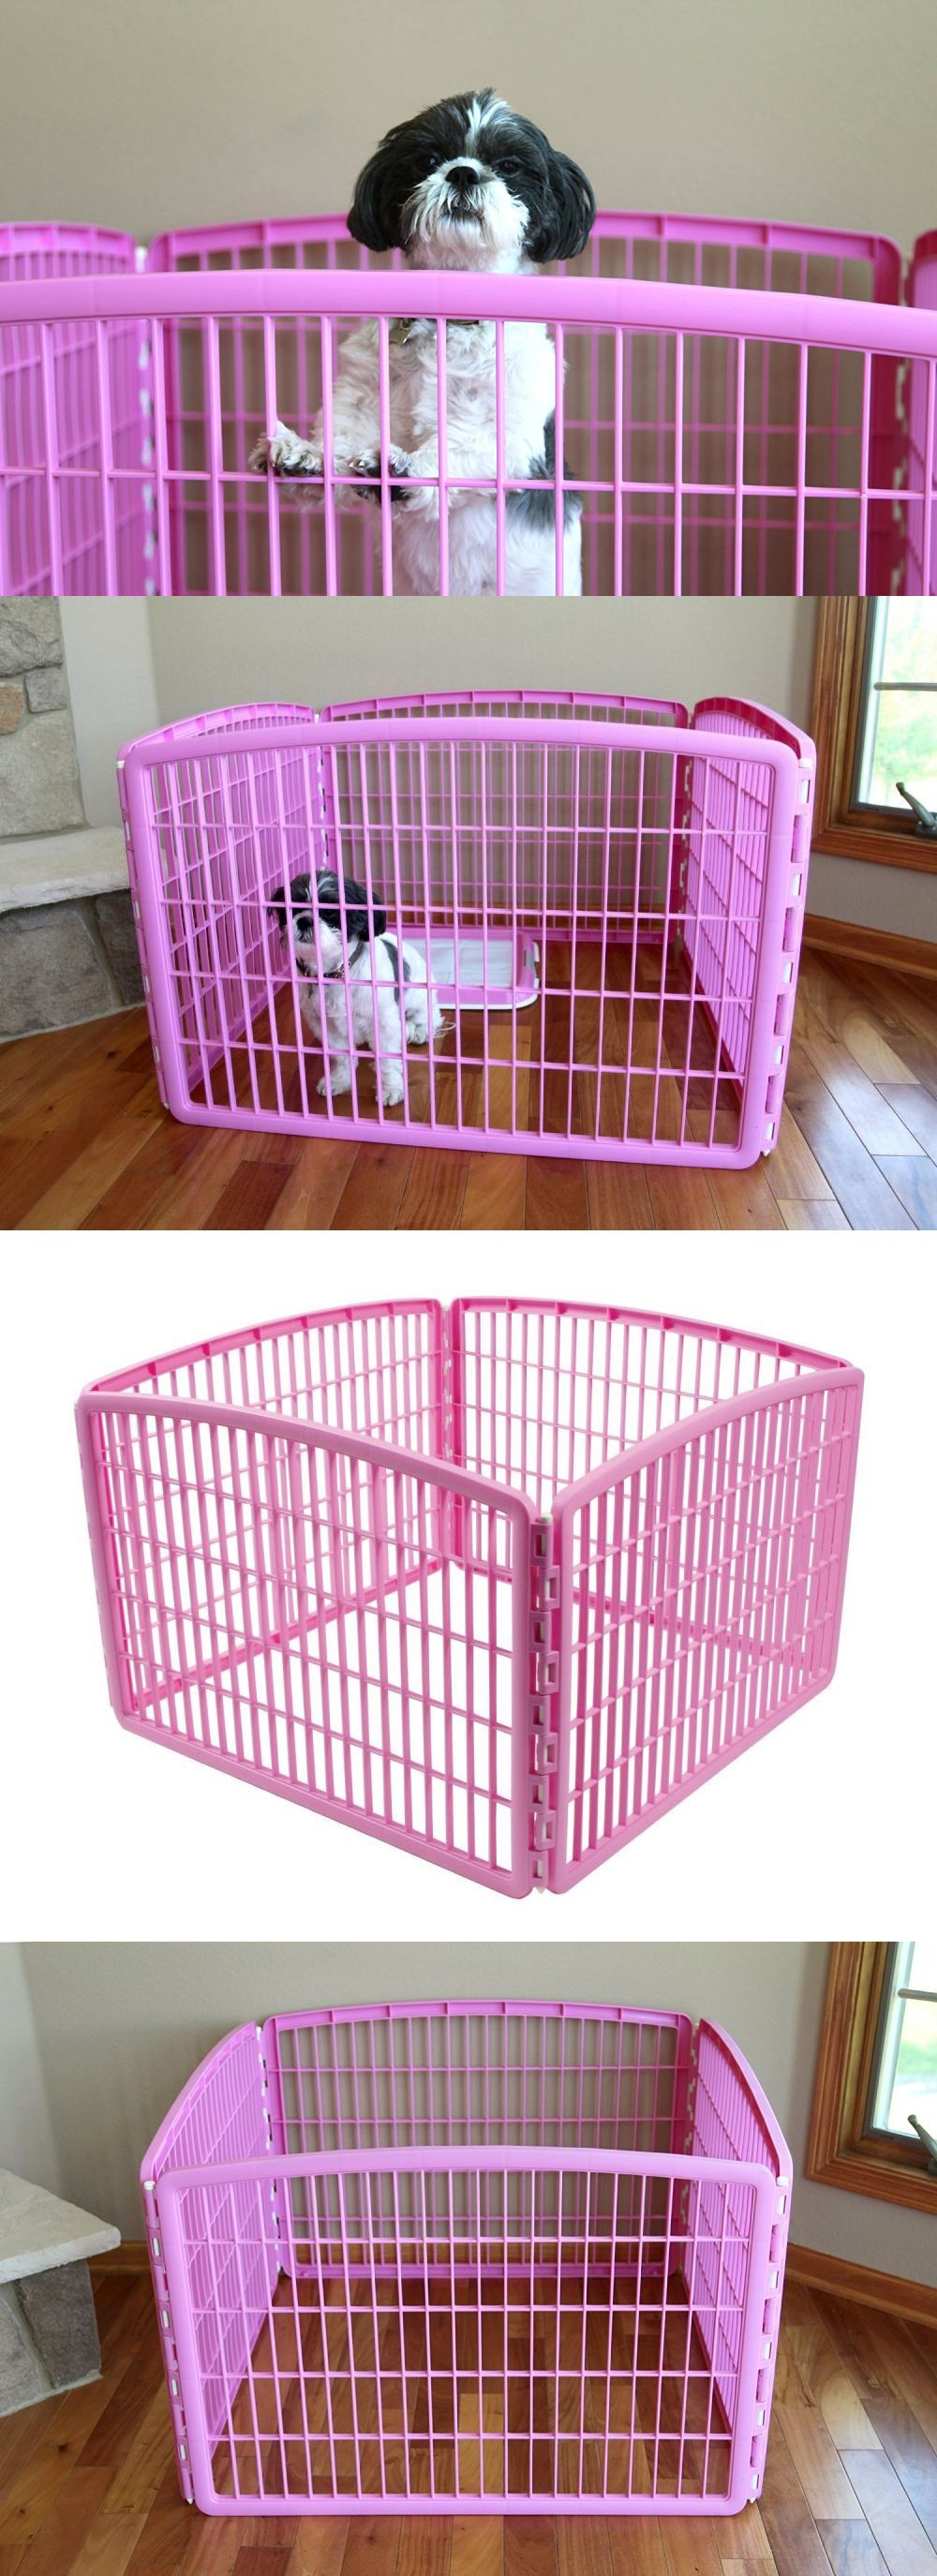 Lovely Fences And Exercise Pens 20748: Small Dog Playpen Puppy Pet Cat Exercise  Fence Portable Panel